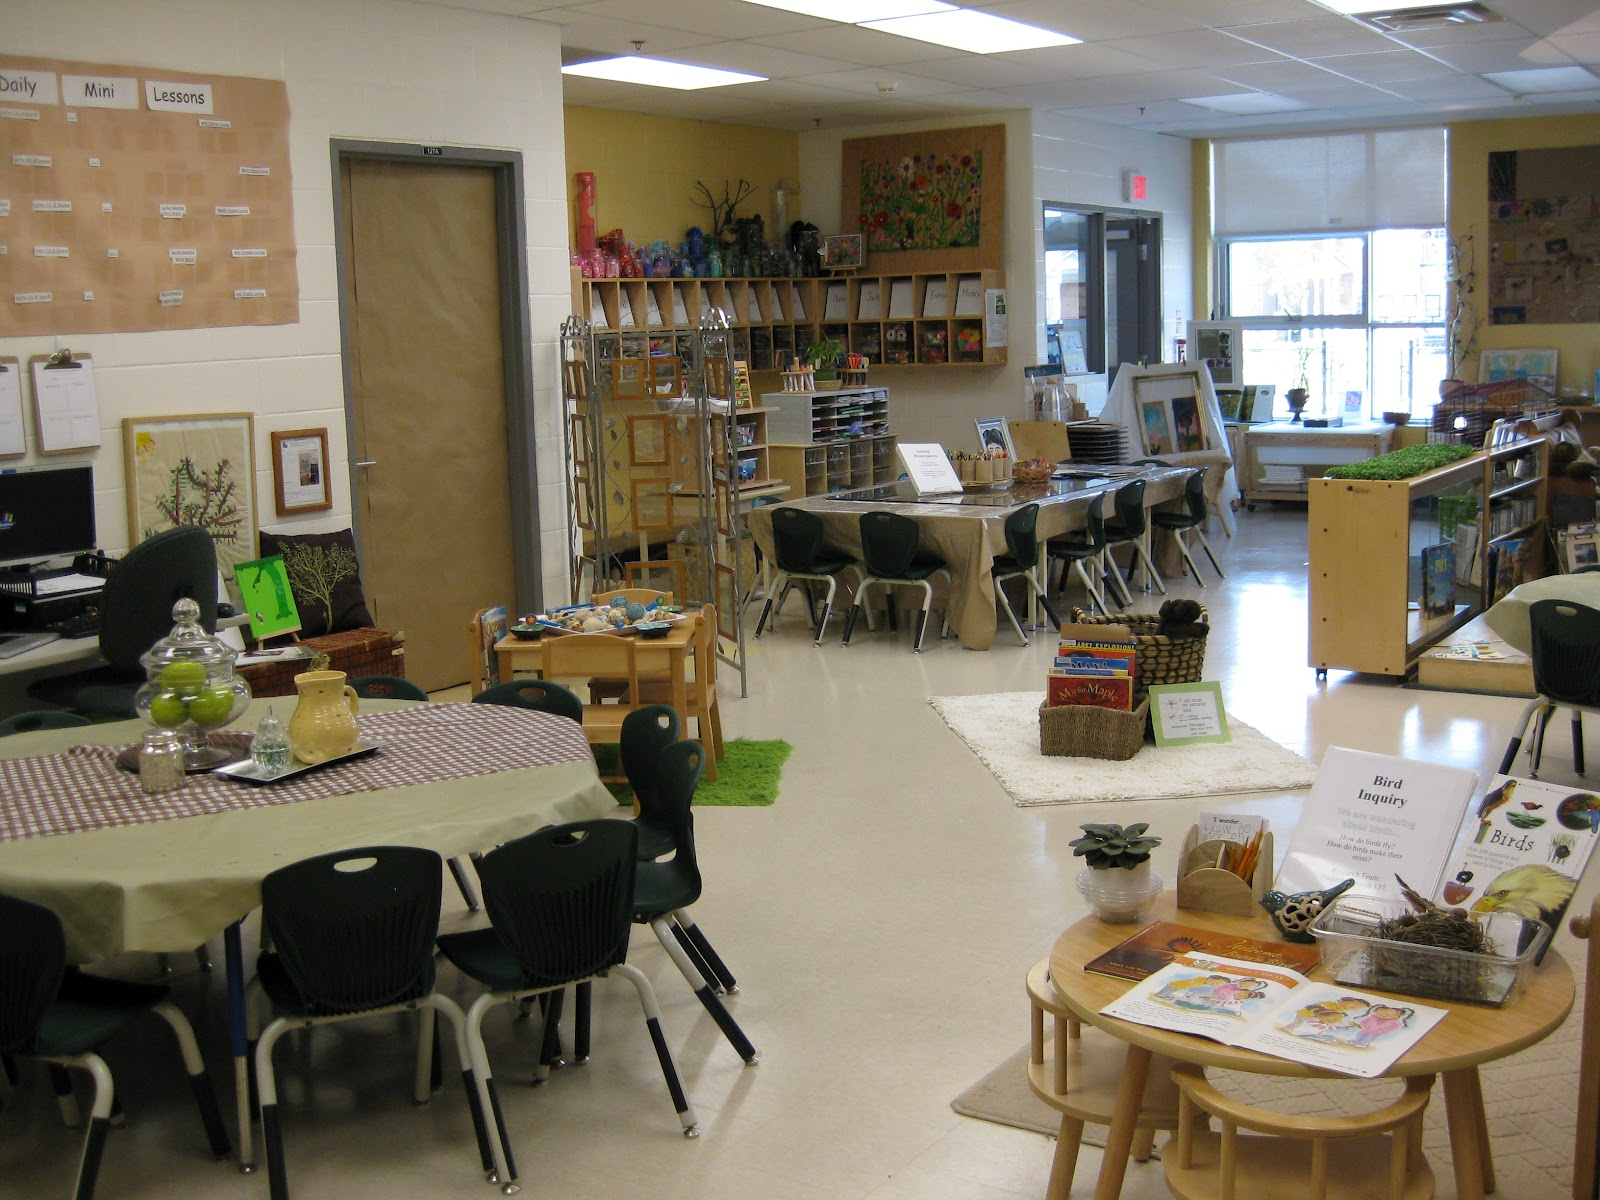 Transforming Our Learning Environment Into A Space Of